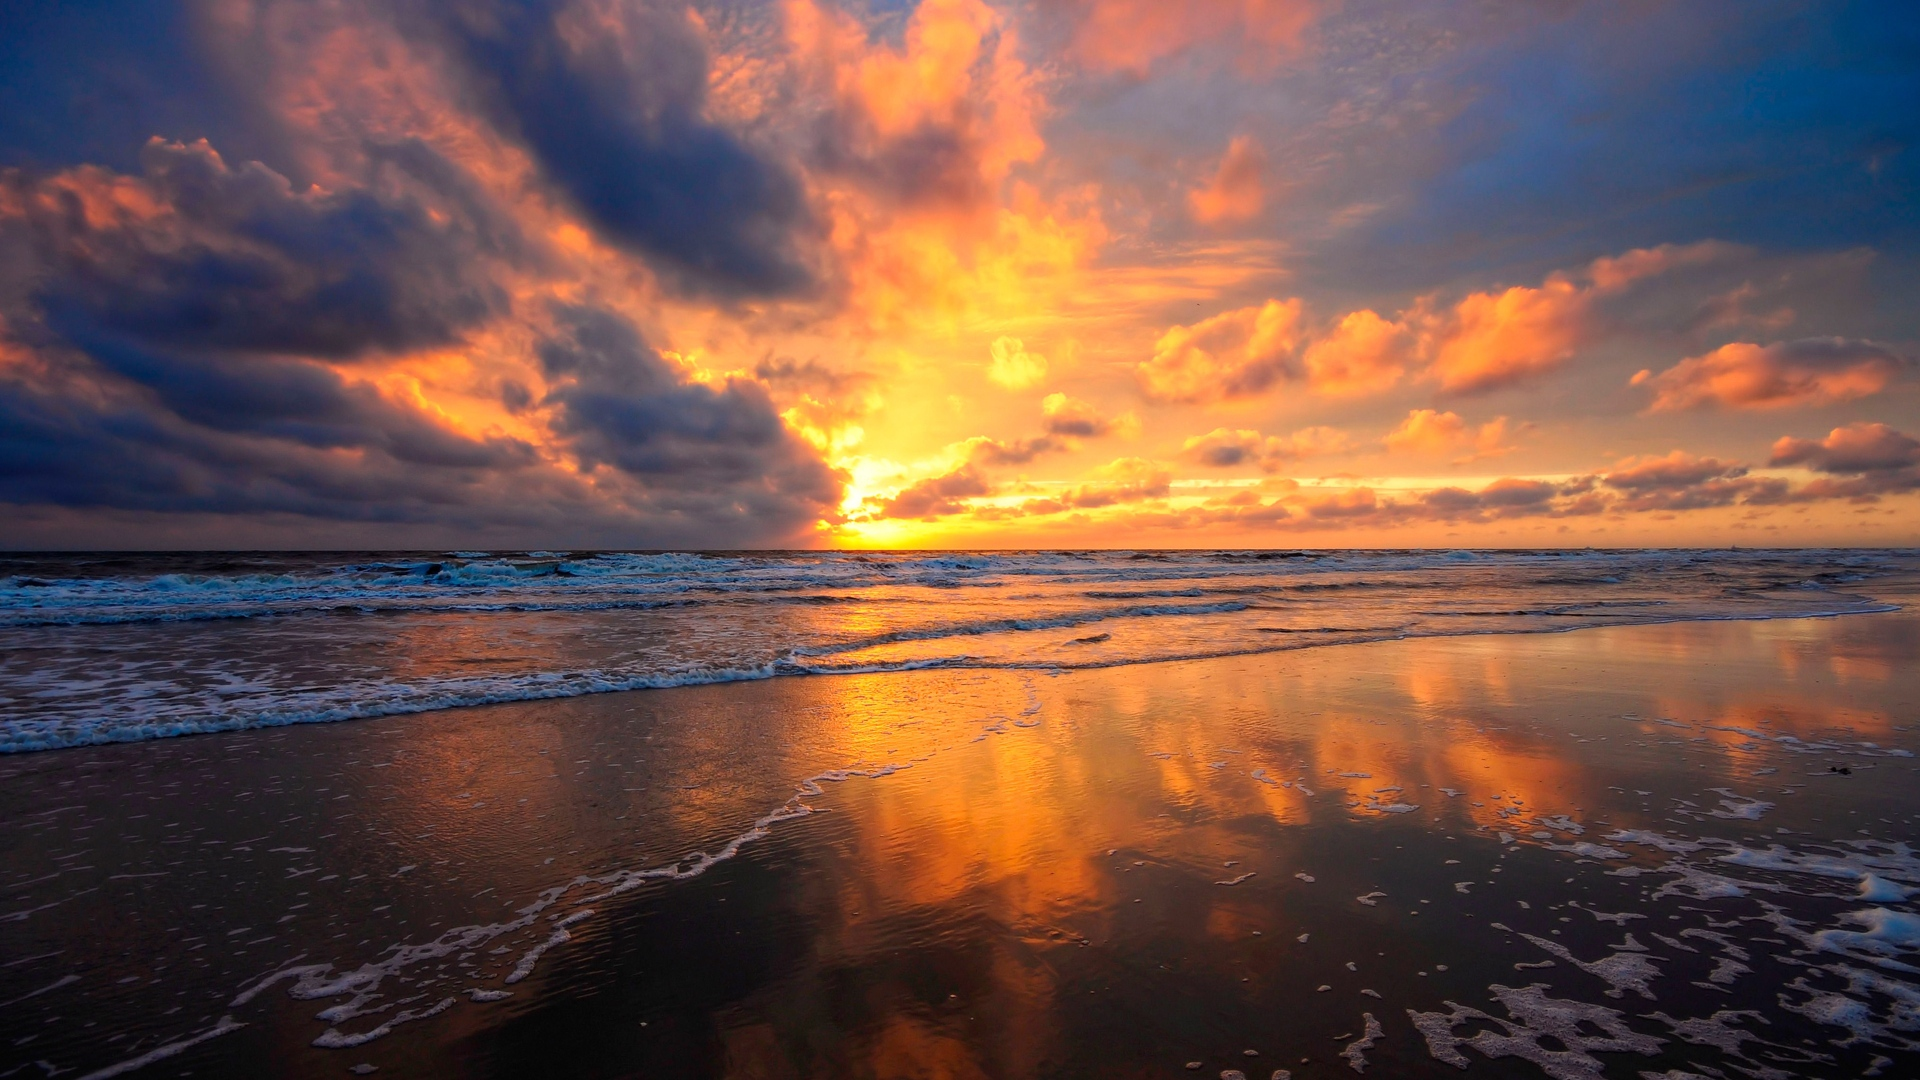 Earnings Disclaimer >> Download Wallpaper 1920x1080 sunset, sky, sea, clouds, sand, wet, mirror, reflection Full HD ...